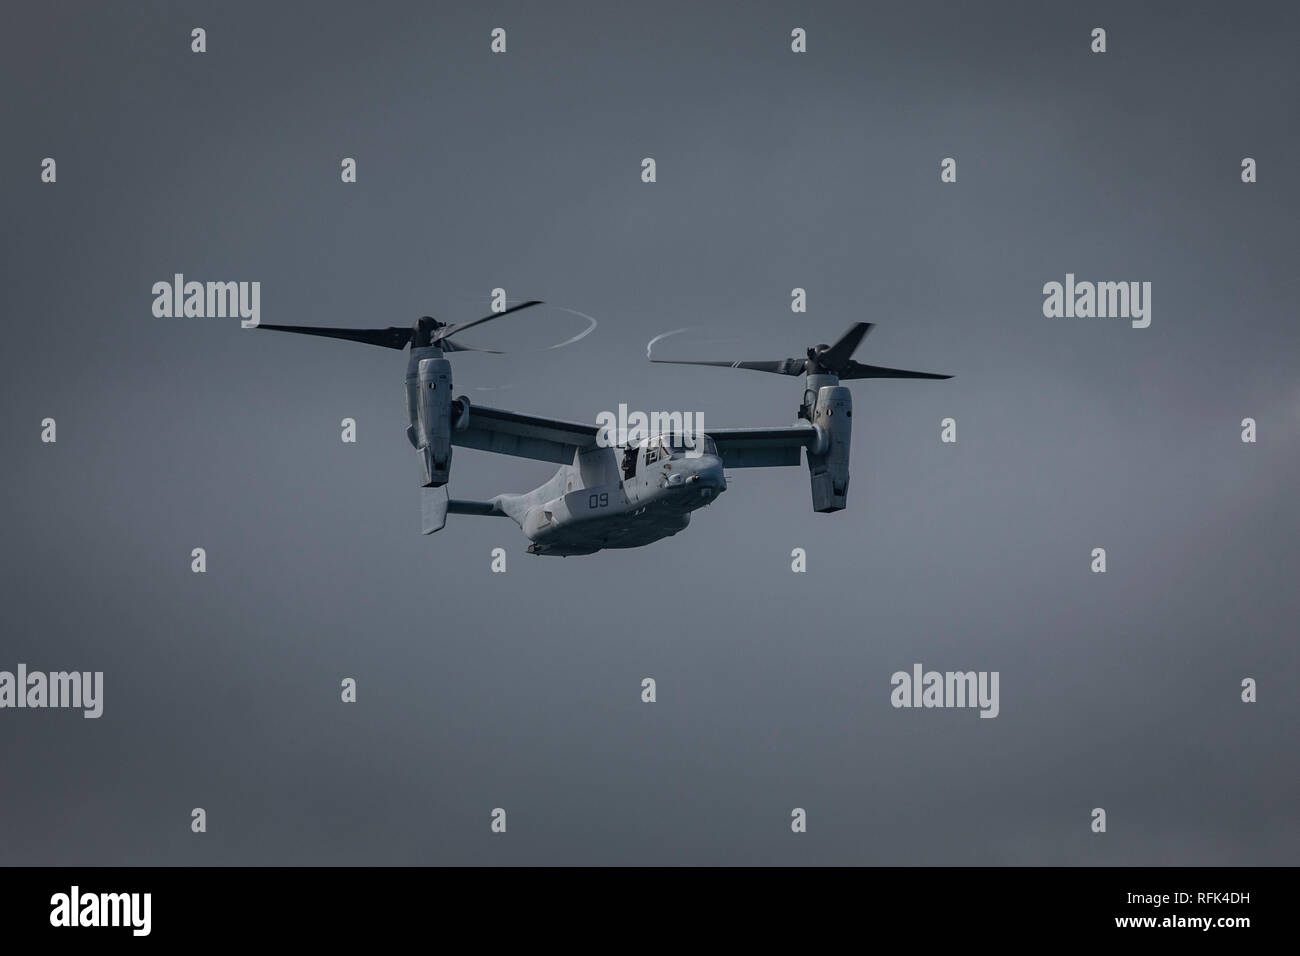 An MV-22B Osprey aircraft assigned to Marine Medium Tiltrotor Squadron (VMM) 363, gets into position prior to Rescue Hoist Training off the shore of Marine Corps Base Hawaii, Jan. 24, 2019. The purpose of this training is to enhance evacuation capabilities of personnel utilizing the MV-22B Osprey in the event of a military or civilian mishap at sea. The ability to hoist stranded individuals from the water with tiltrotor aircraft provides additional life-saving response options for Hawaii-based Marine's and the III Marine Expeditionary Force. (U.S. Marine Corps photo by Sgt. Jesus Sepulveda Tor Stock Photo